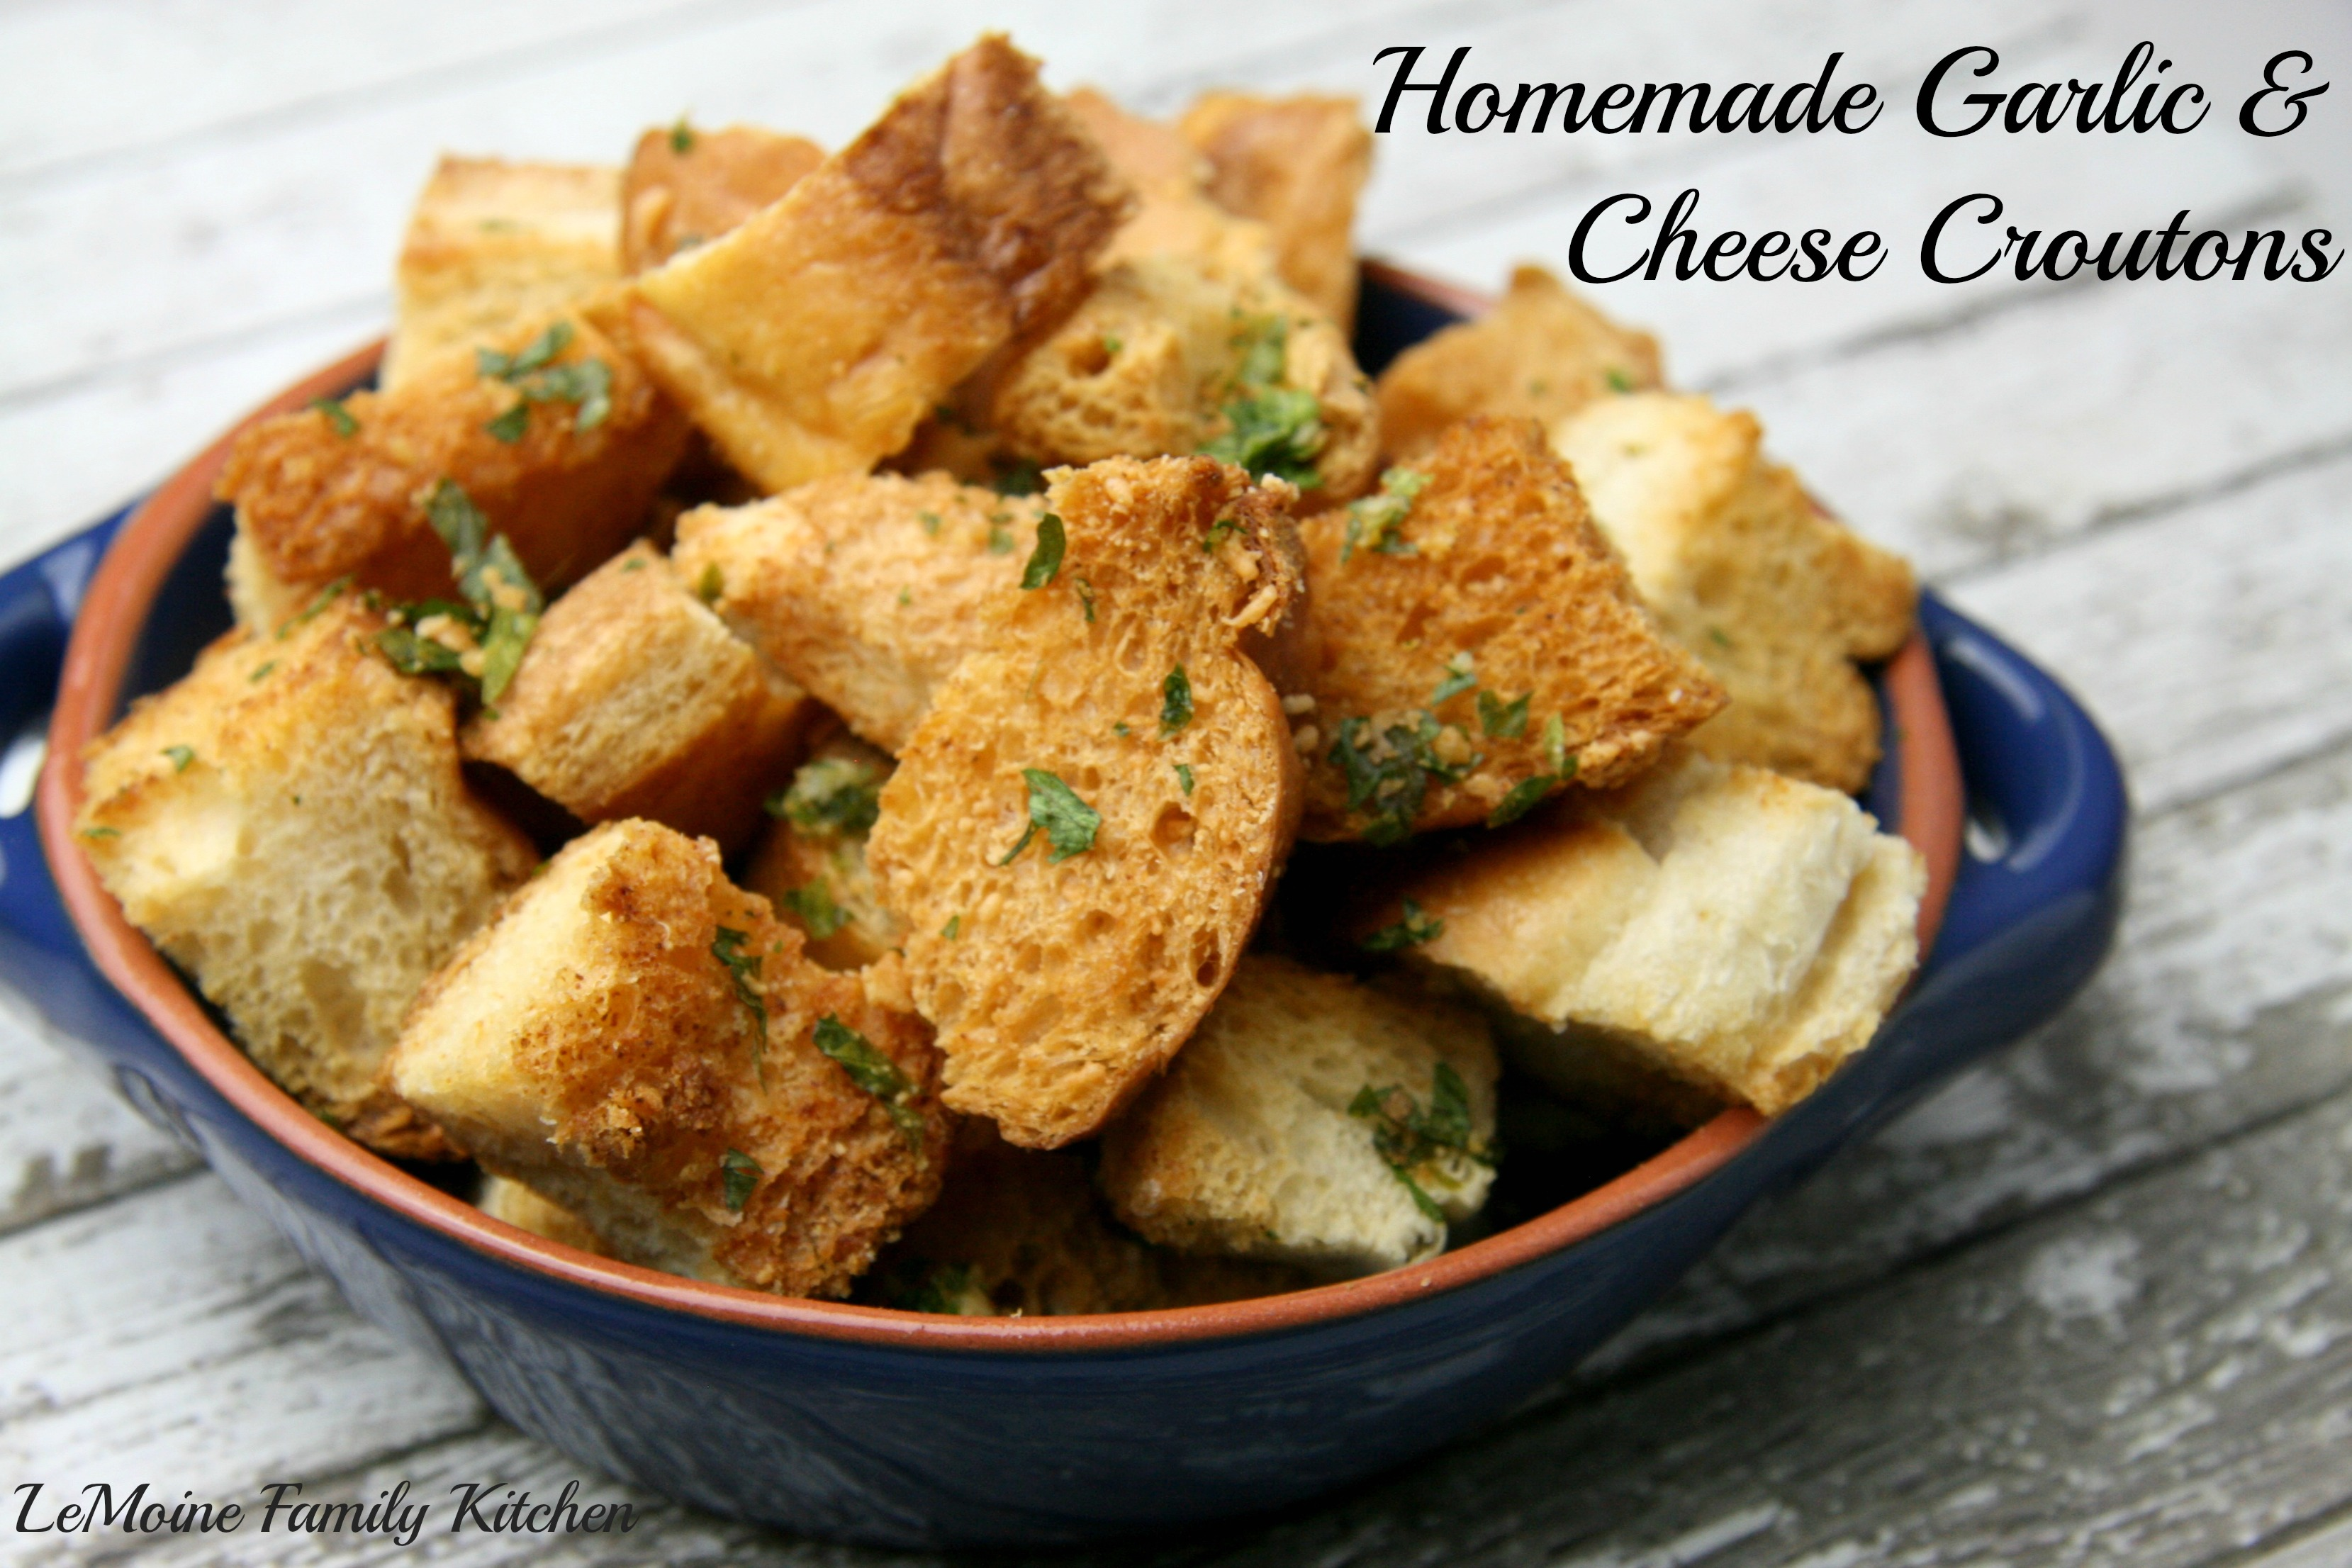 Homemade Garlic & Cheese Croutons